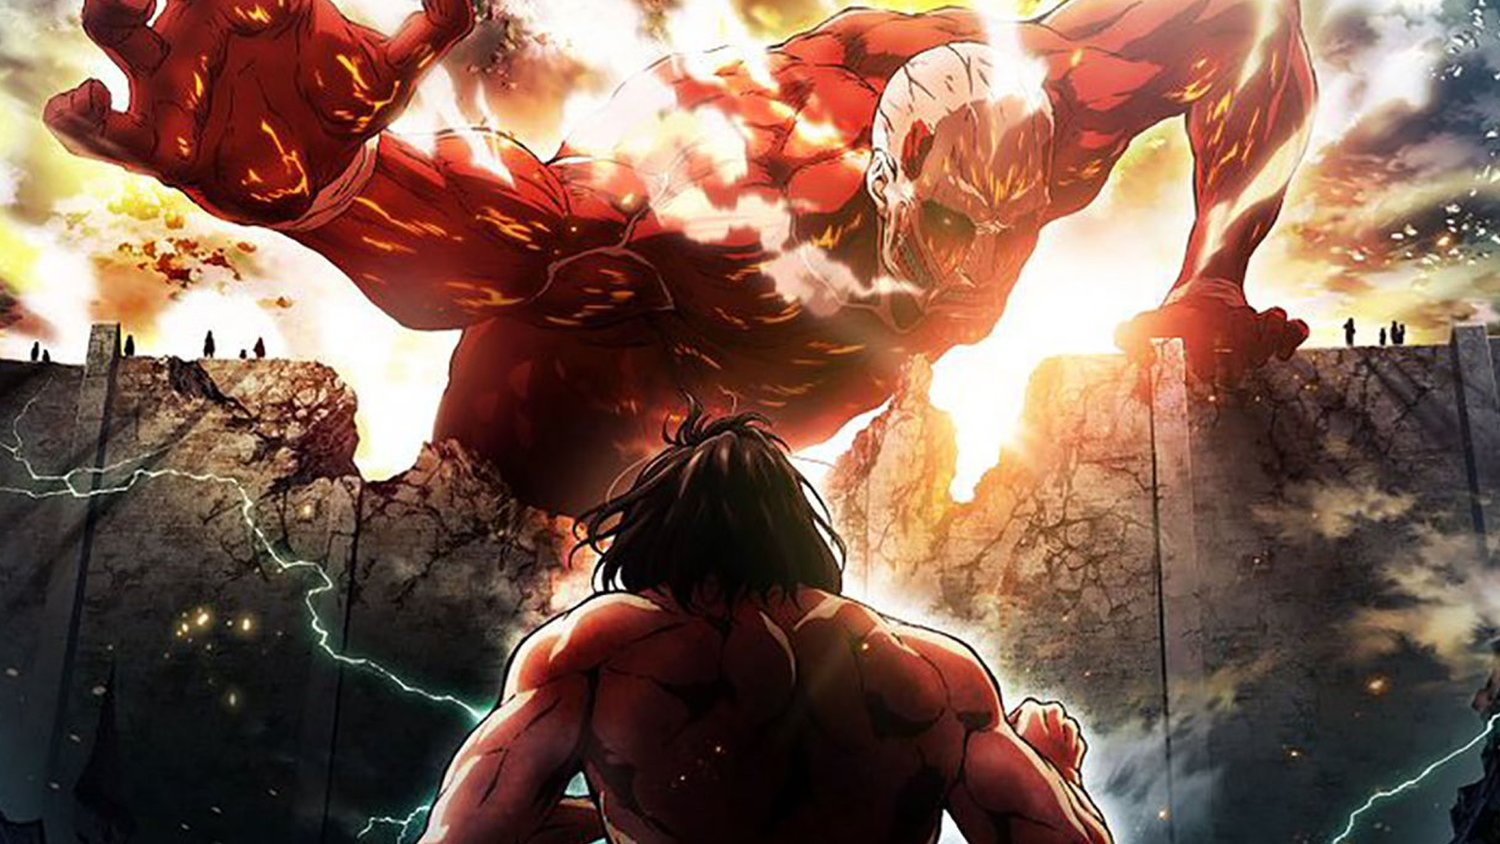 Wbs Live Action Attack On Titan Film Will Be Helmed By The Director